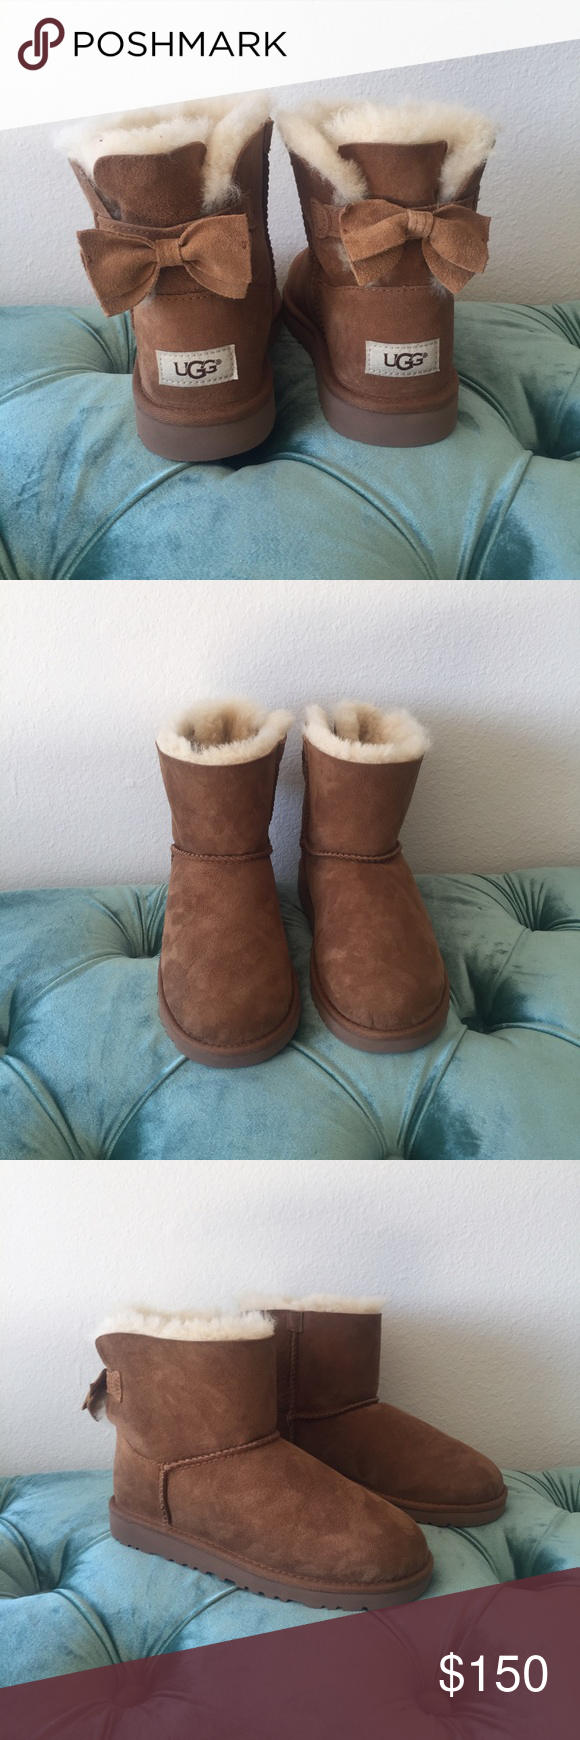 7aec10ed253 Classic Ugg boots with bow accents Classic Ugg boots with bow ...